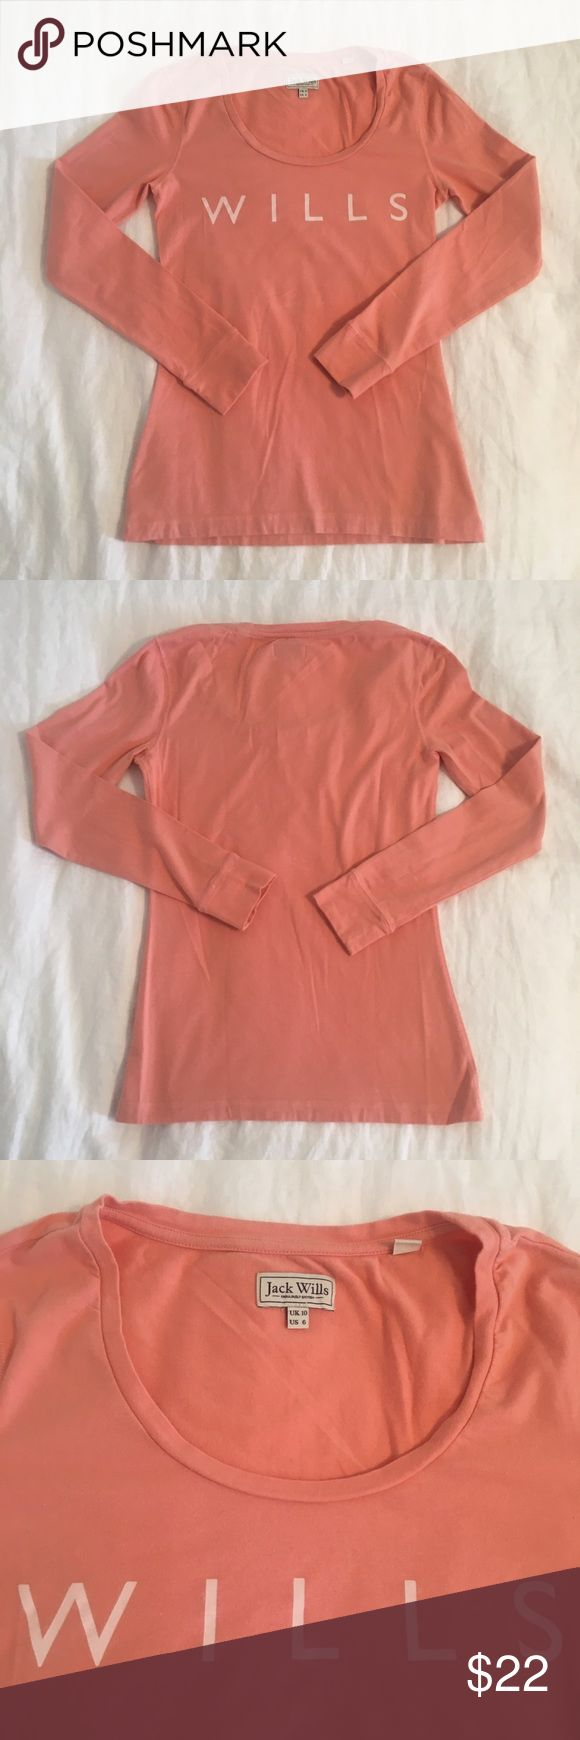 Jack Wills T-Shirt Long sleeved t-shirt from Jack Wills. Peach colored. Only worn once! Super comfortable and cute. Jack Wills Tops Tees - Long Sleeve